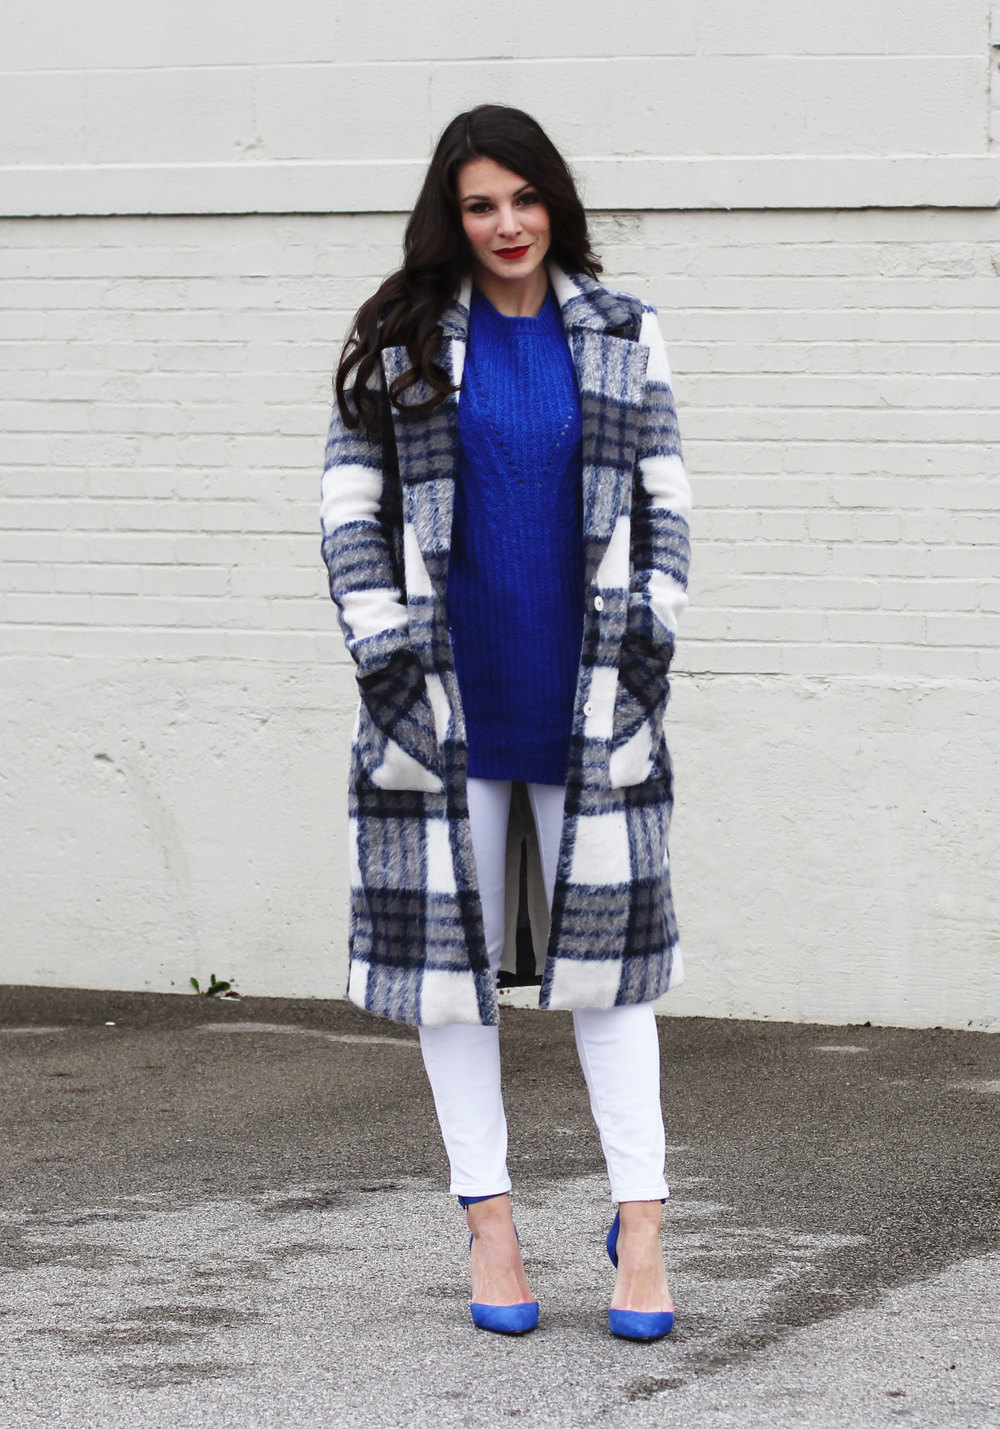 Winter White Outfit, Forever 21 Longline Plaid Coat, Mossimo Cable Tunic Sweater, White Skinny Jeans, Jessica Simpson Blue Pumps, How To Wear White In The Winter